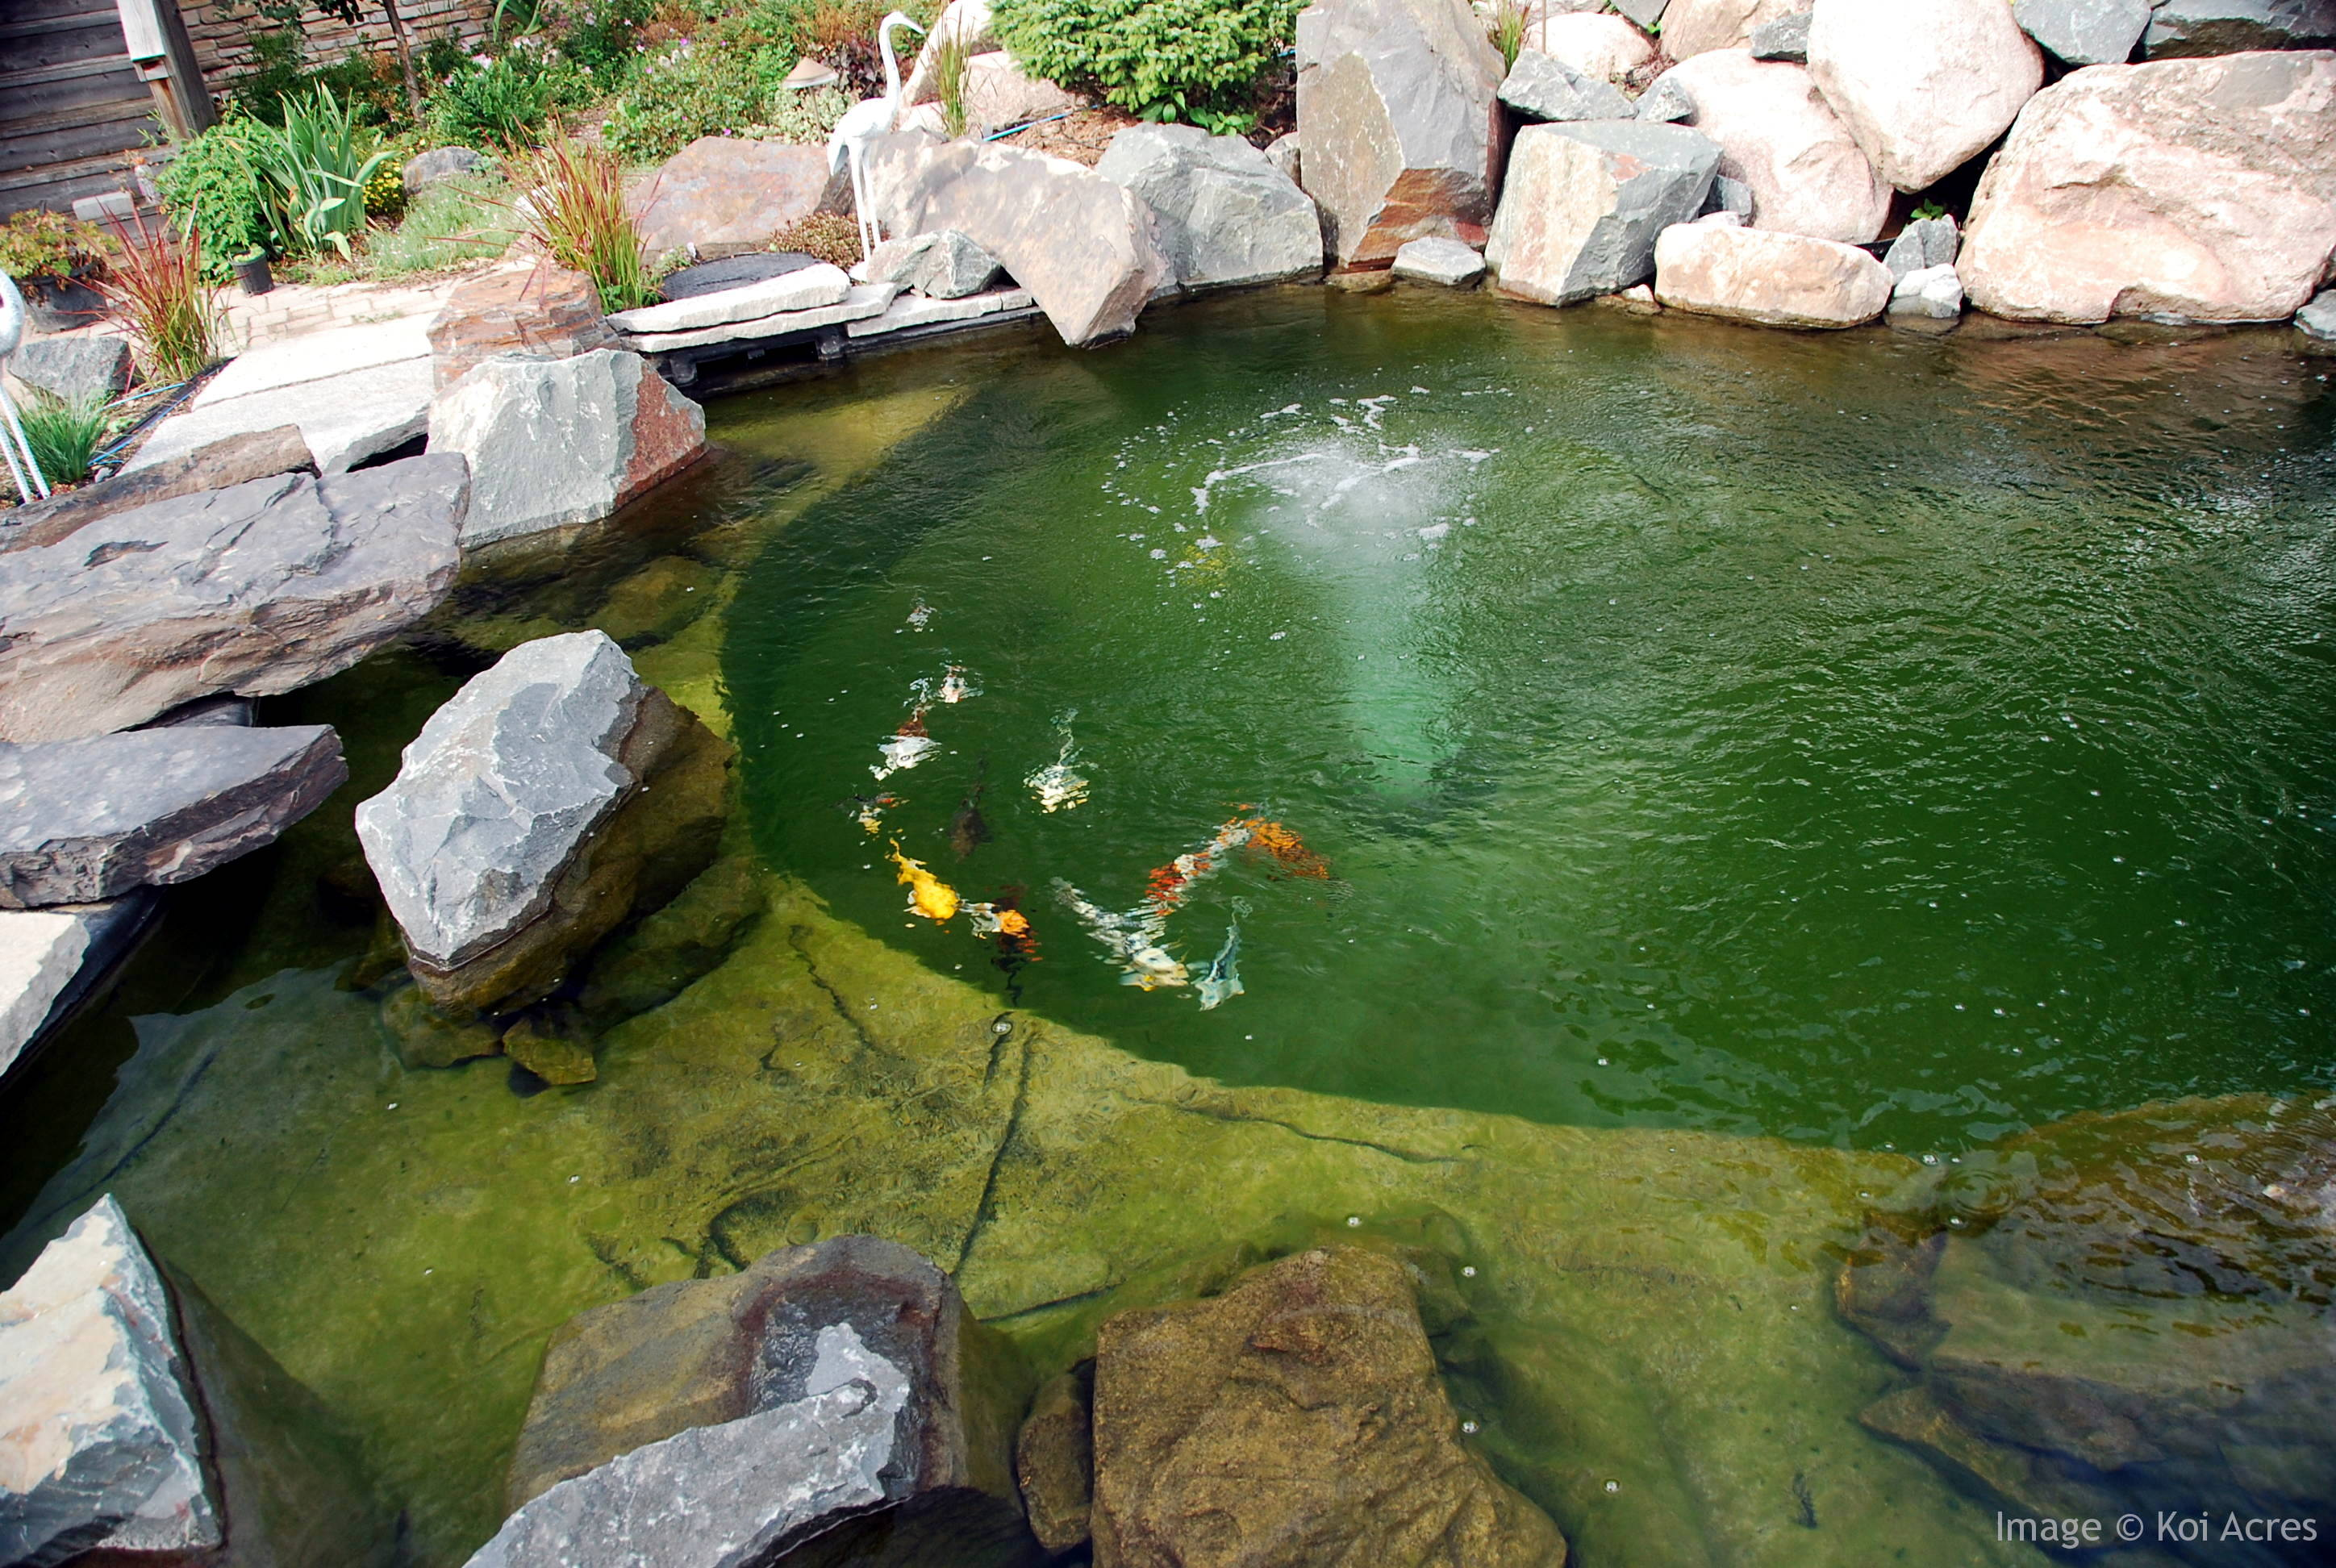 Koi fishing 6 charming koi fish pond care biological for Fish pond filtration